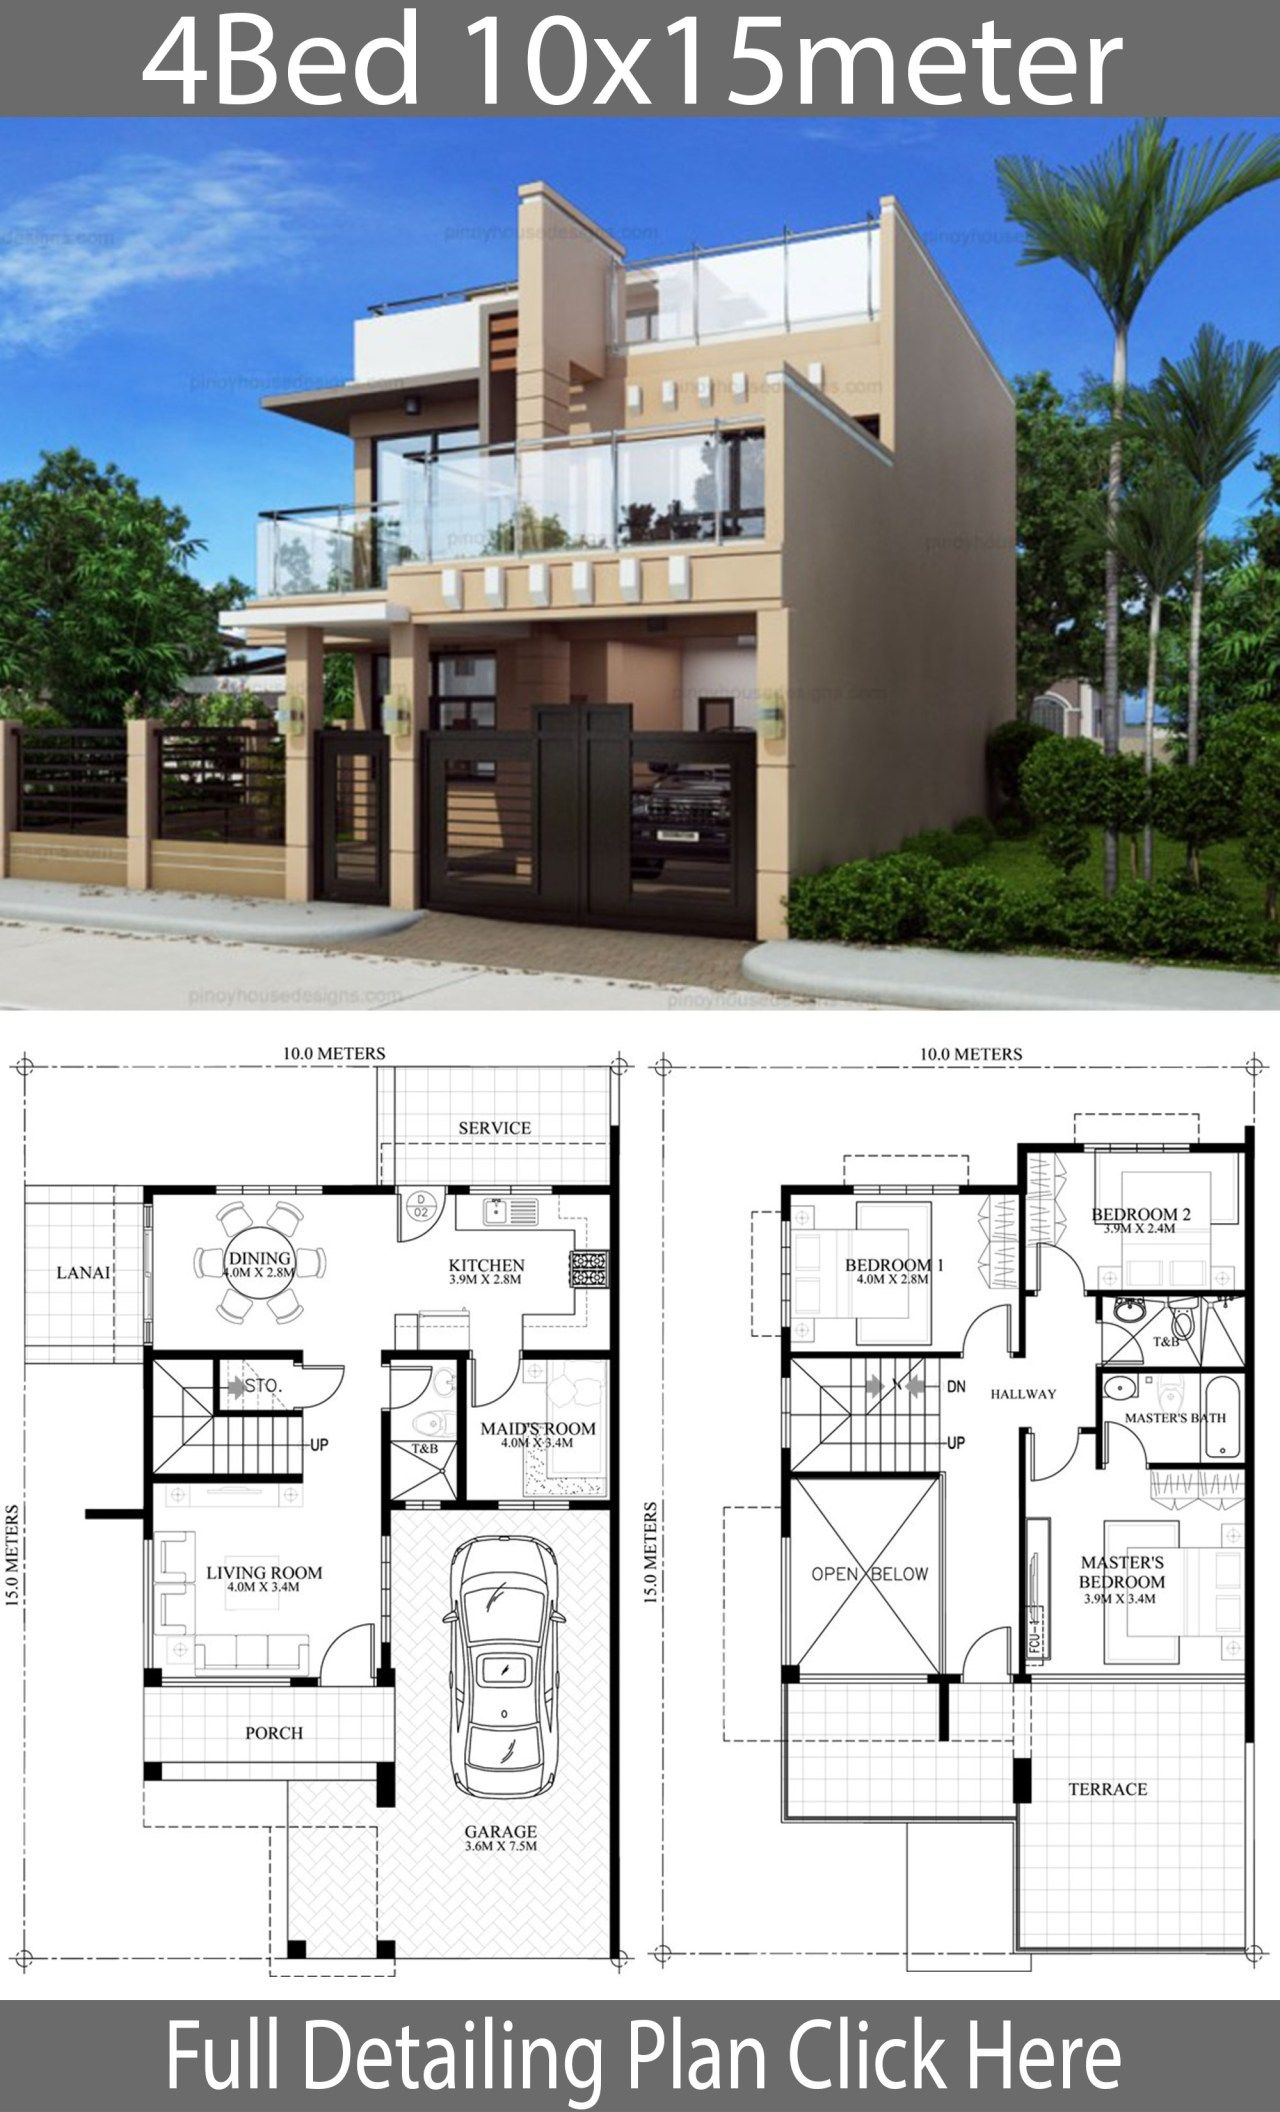 Home Design Plan 10x15m With 4 Bedrooms Home Ideas Model House Plan Architectural House Plans Modern House Plans